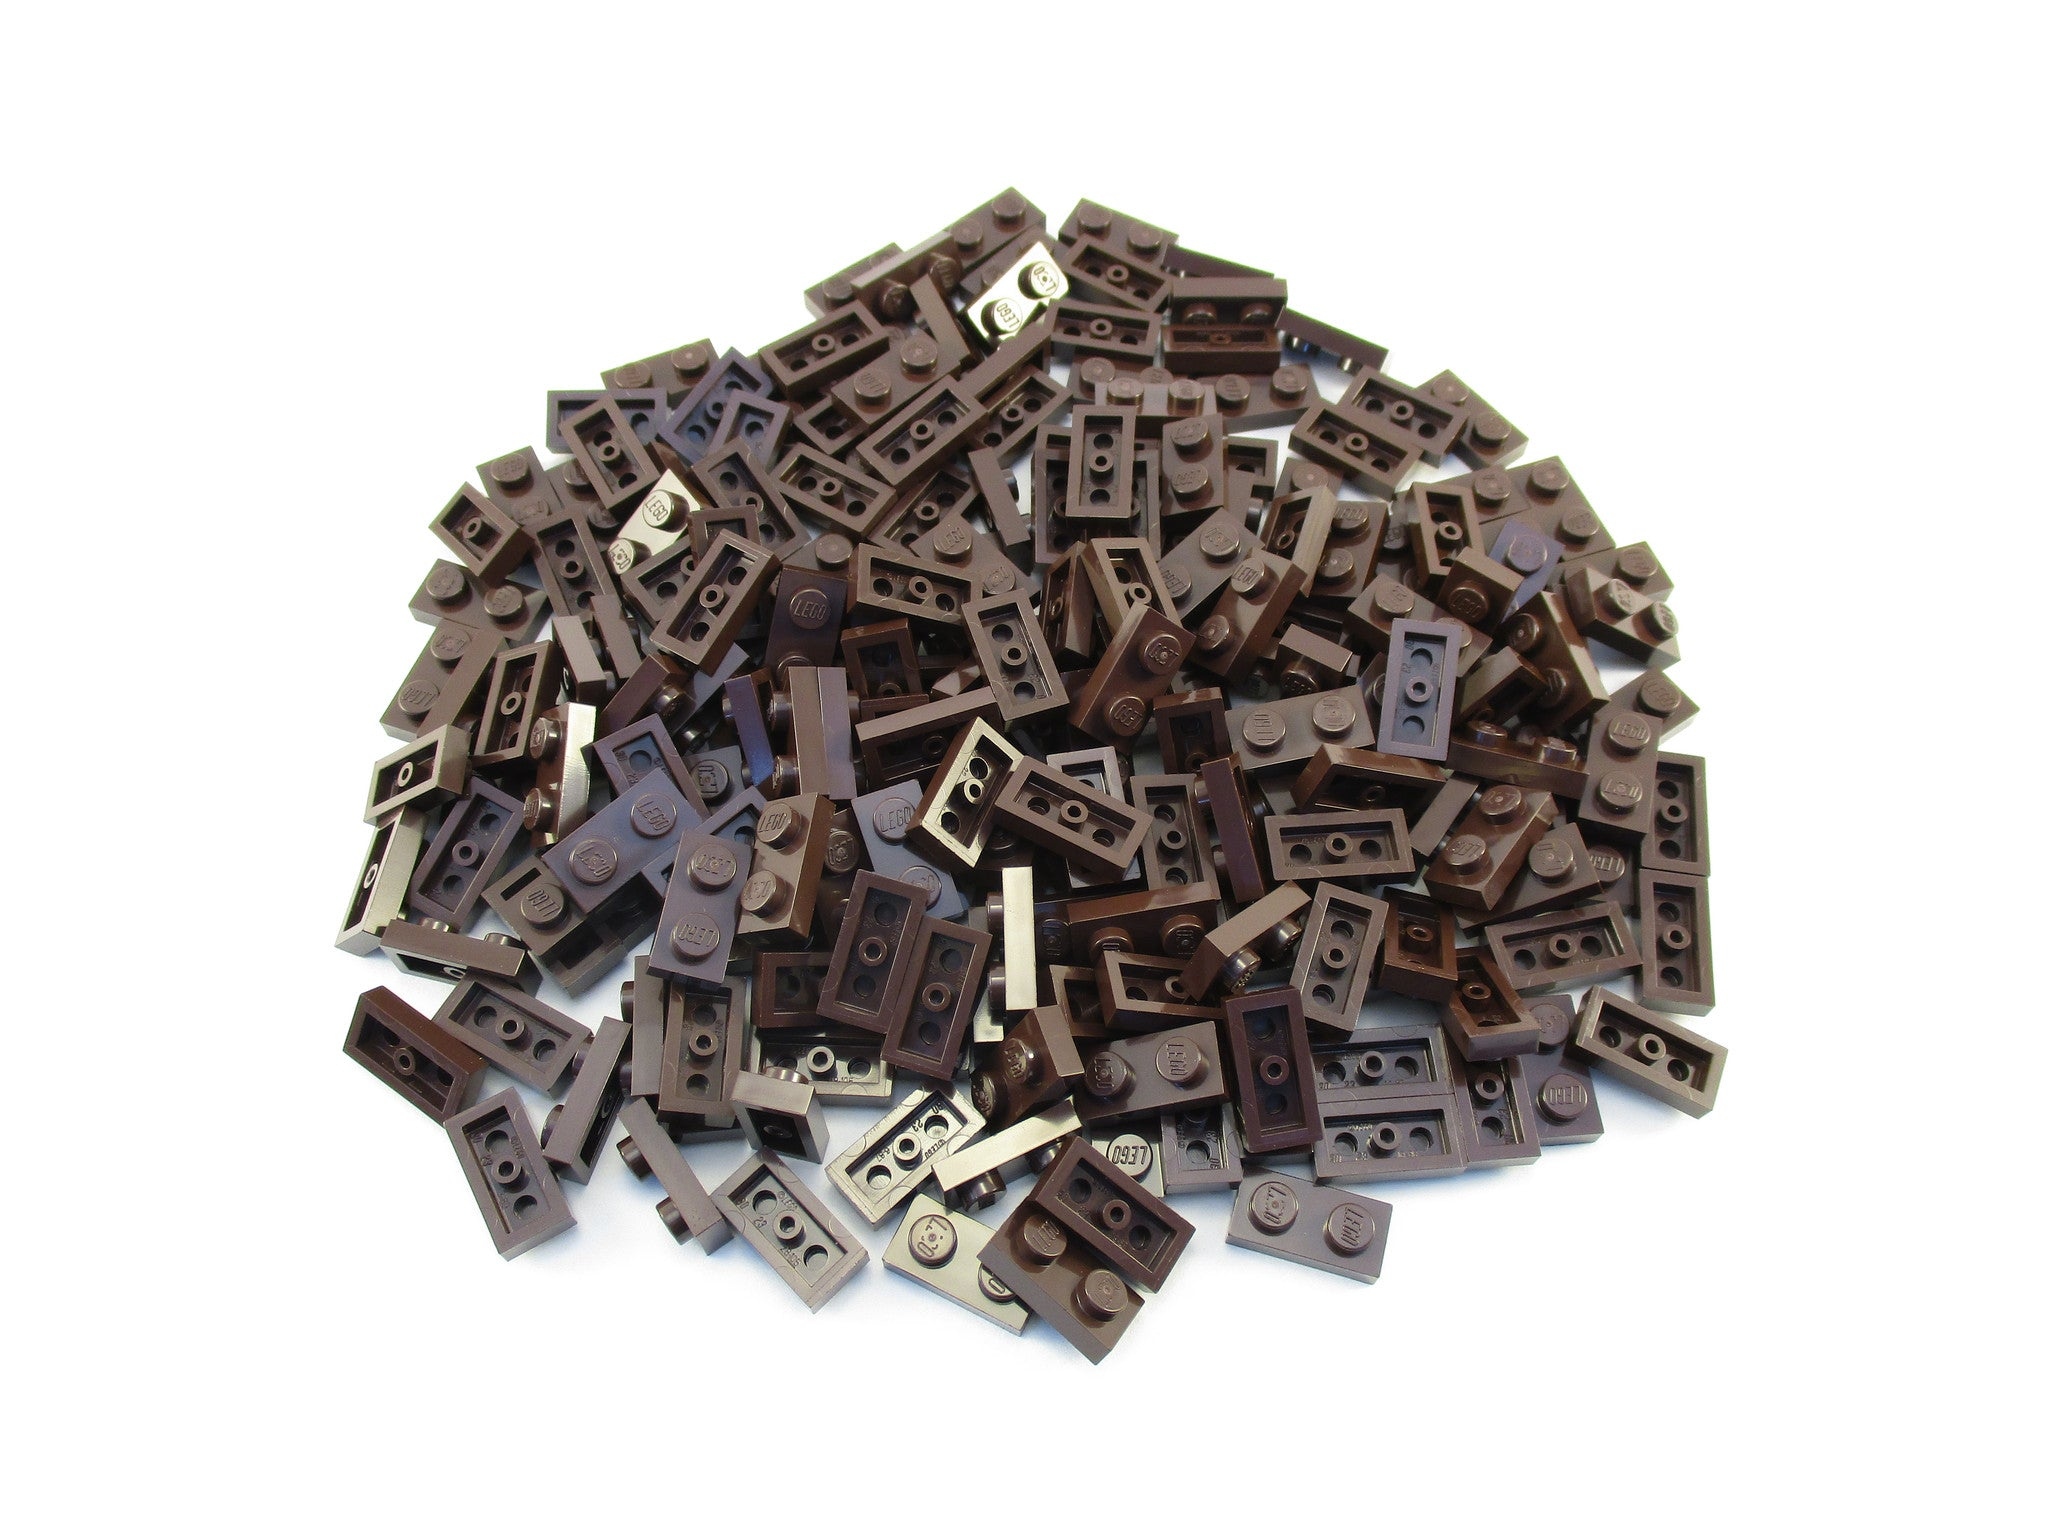 LEGO Dark Brown Plate 1x2 Lot of 100 Parts Pieces 3023